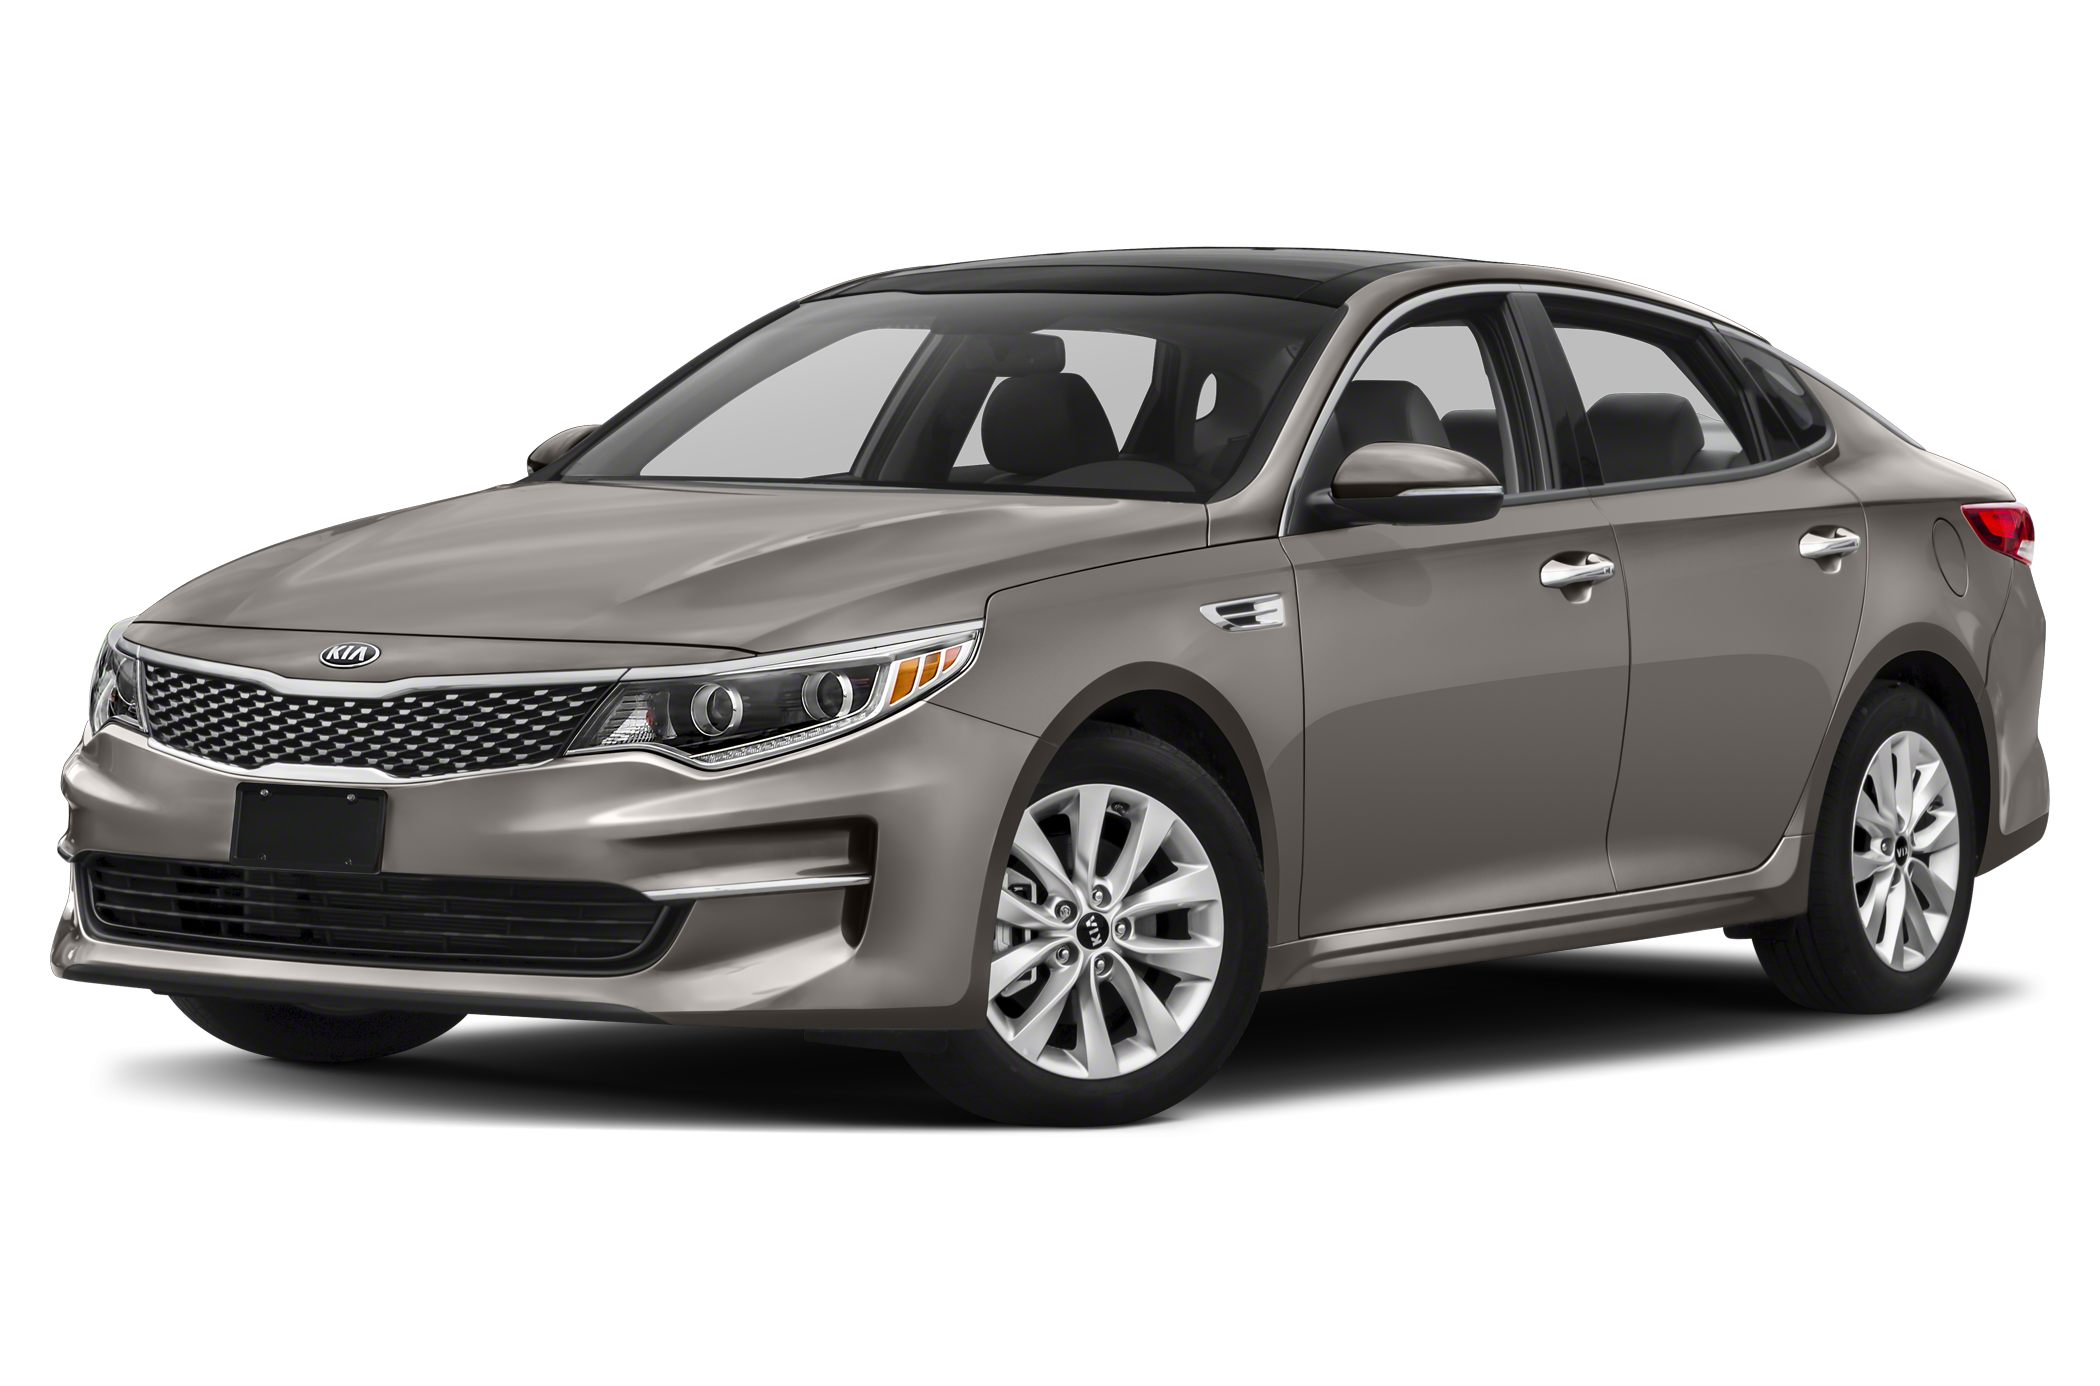 page size for click kia views larger comparison optima colors forum jpg image version name